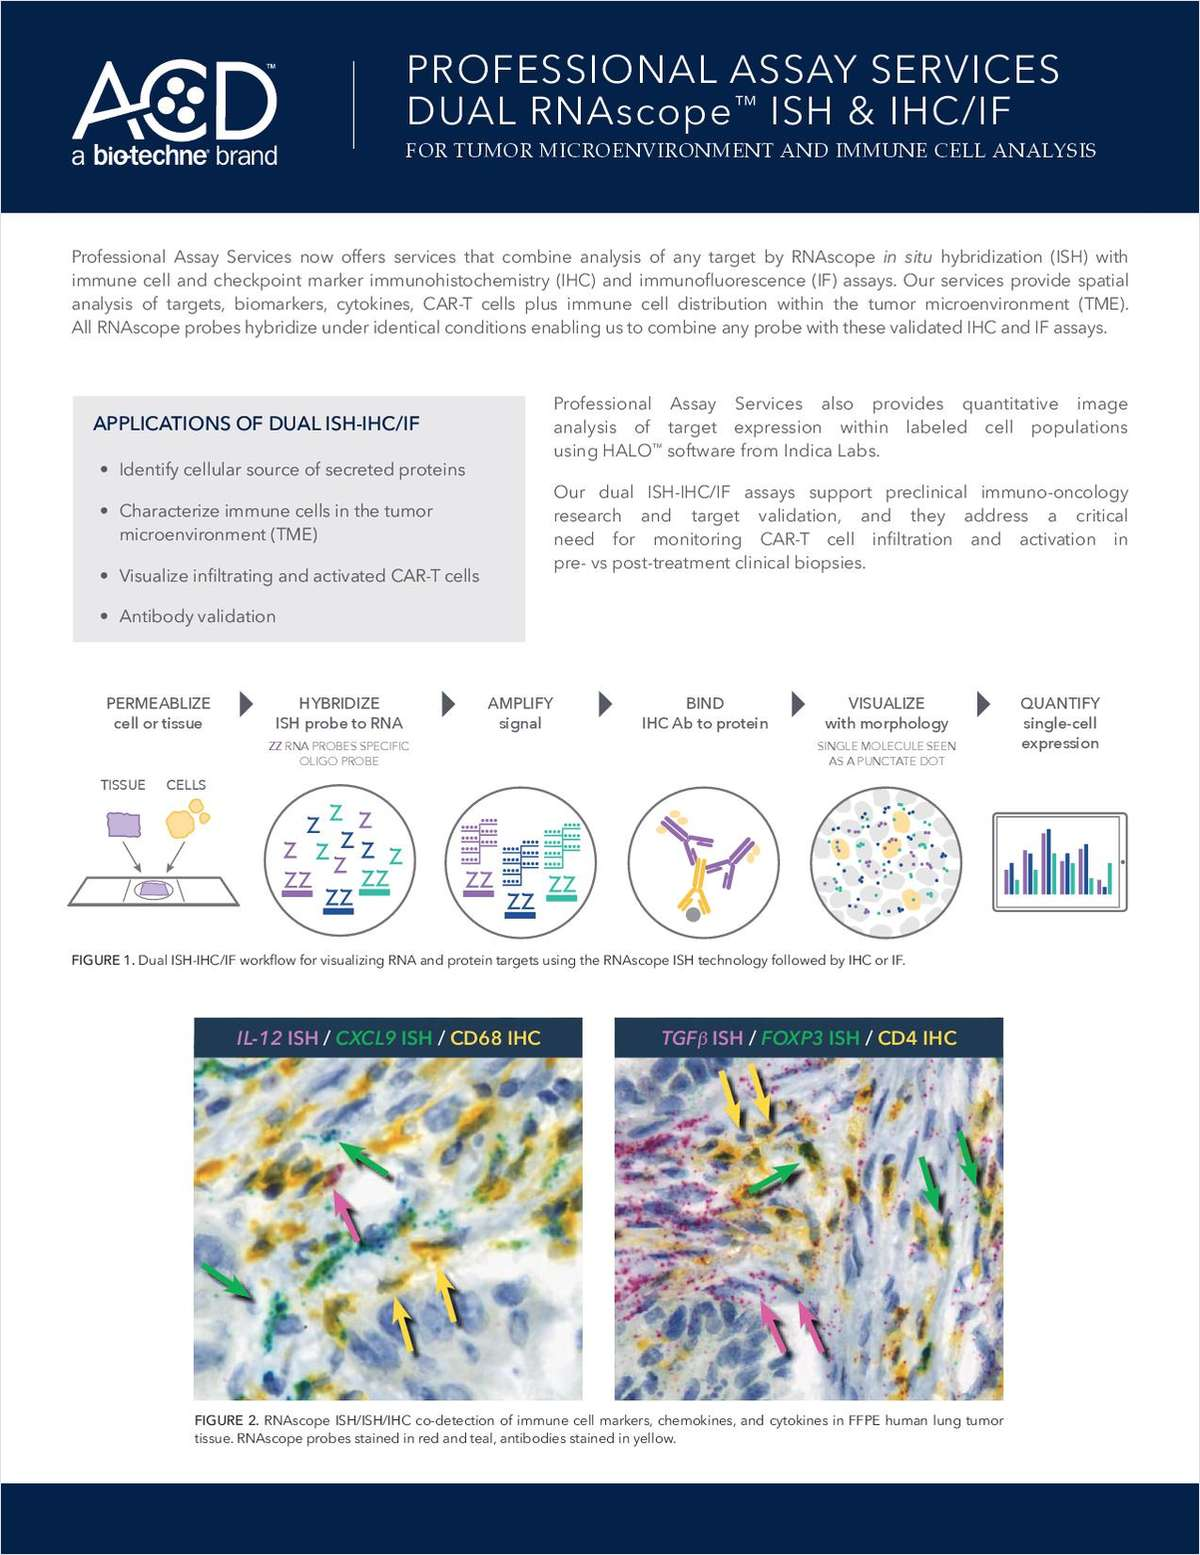 Professional Assay Services Dual RNAscope ISH & IHC/IF for Tumor Microenvironment and Immune Cell Analysis